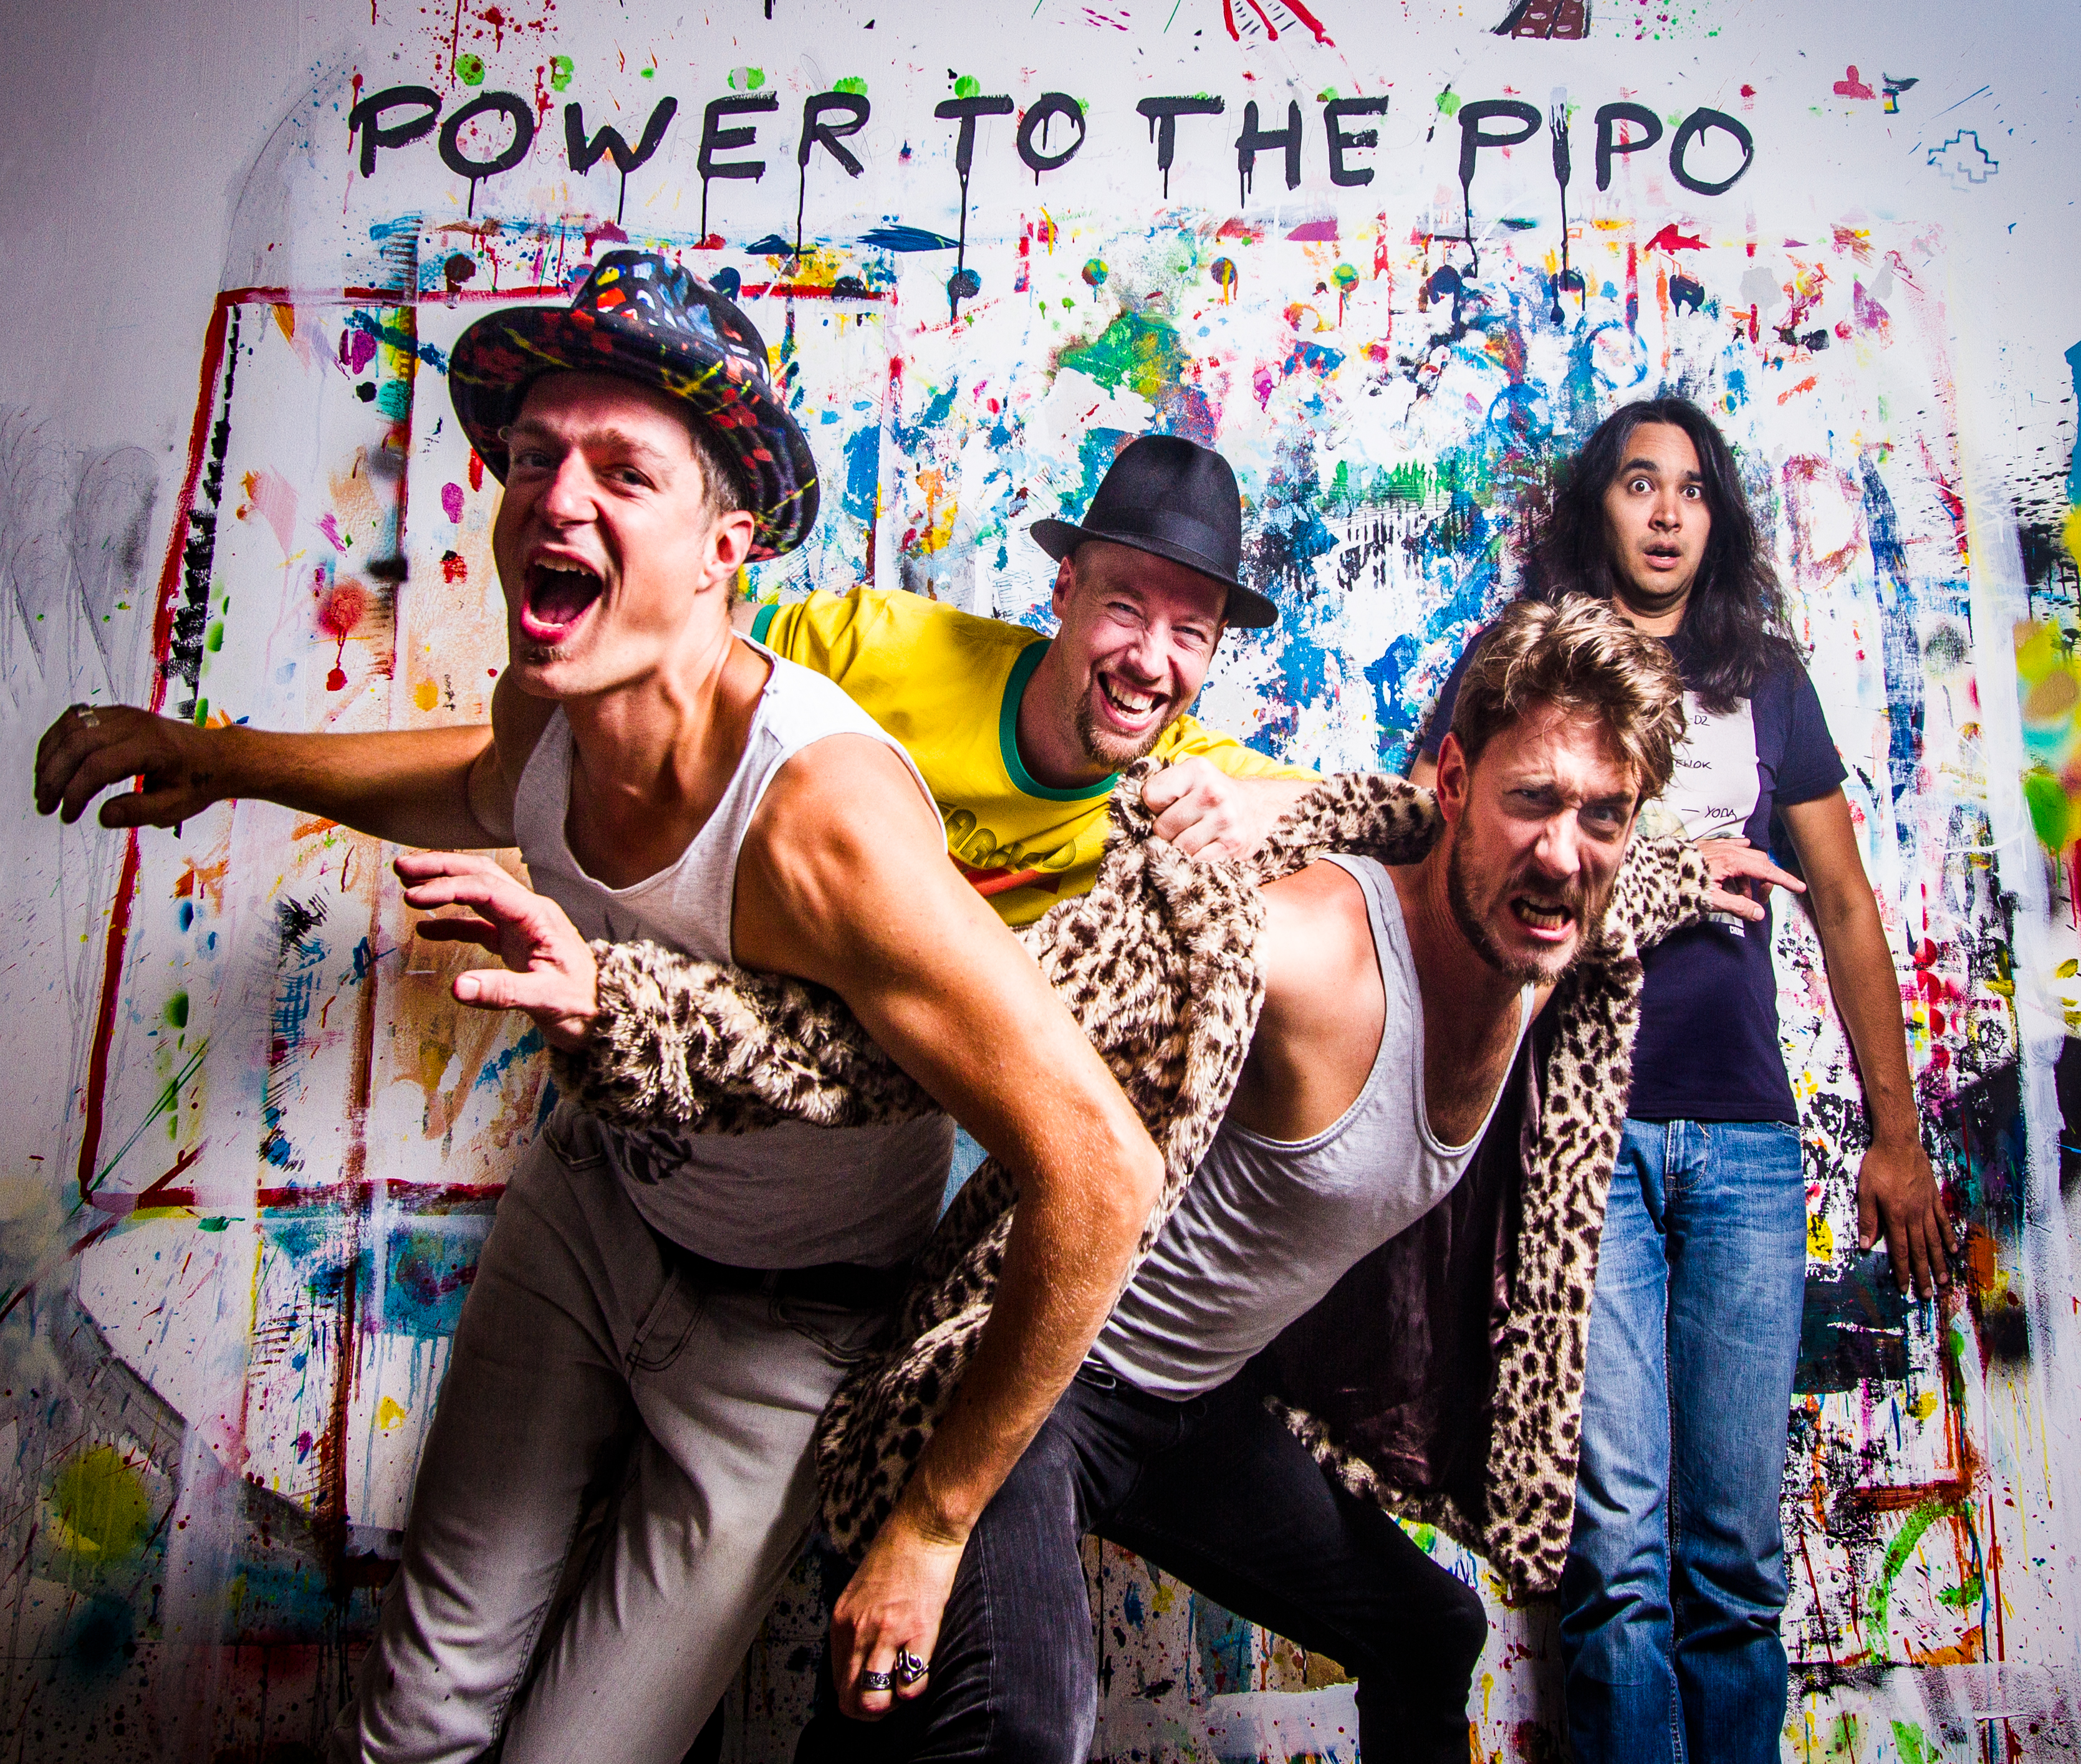 Power to the Pipo